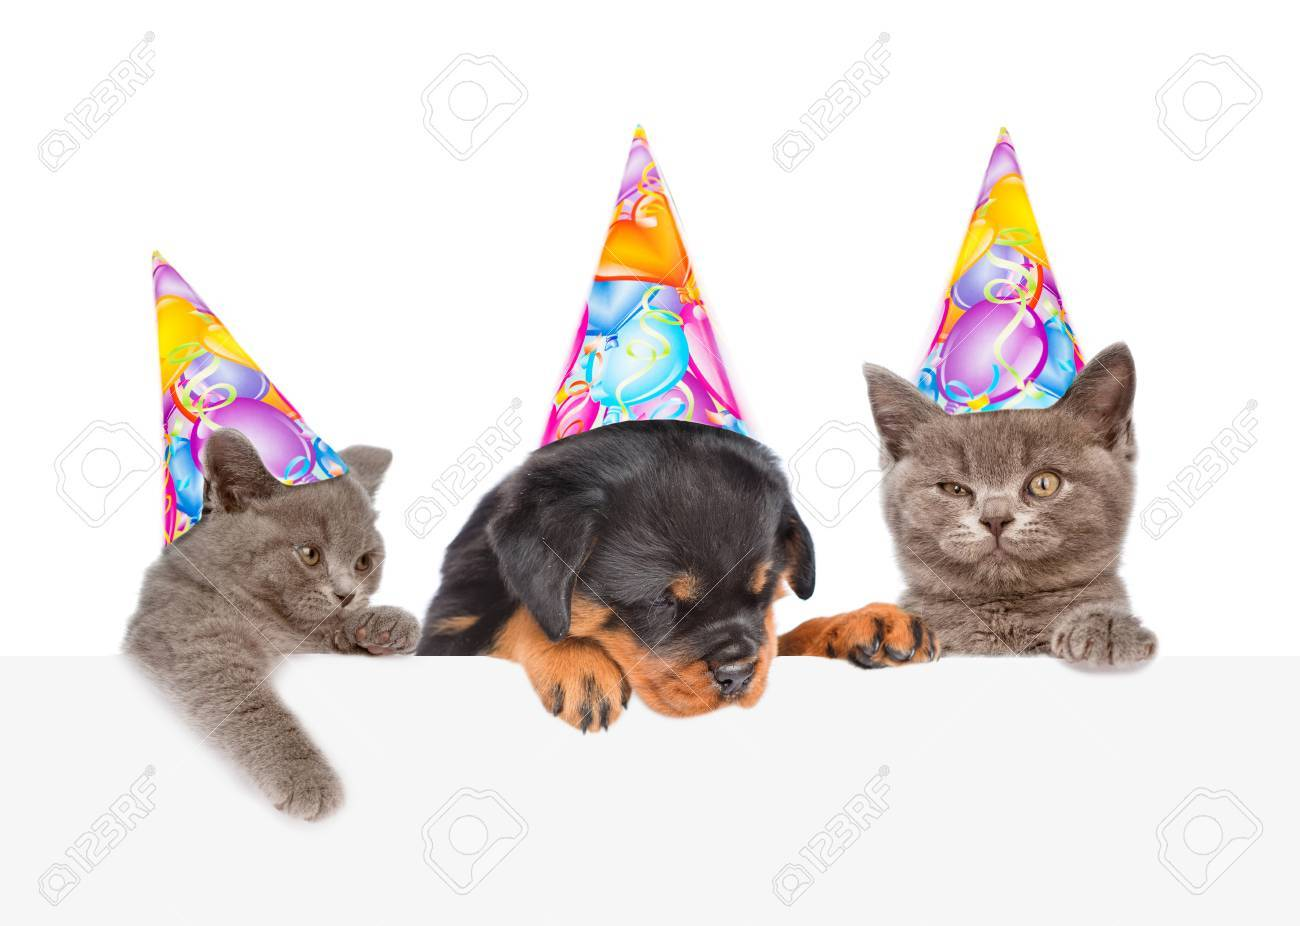 Cats And Dog In Birthday Hats Peeking From Behind Empty Board Isolated On White Background